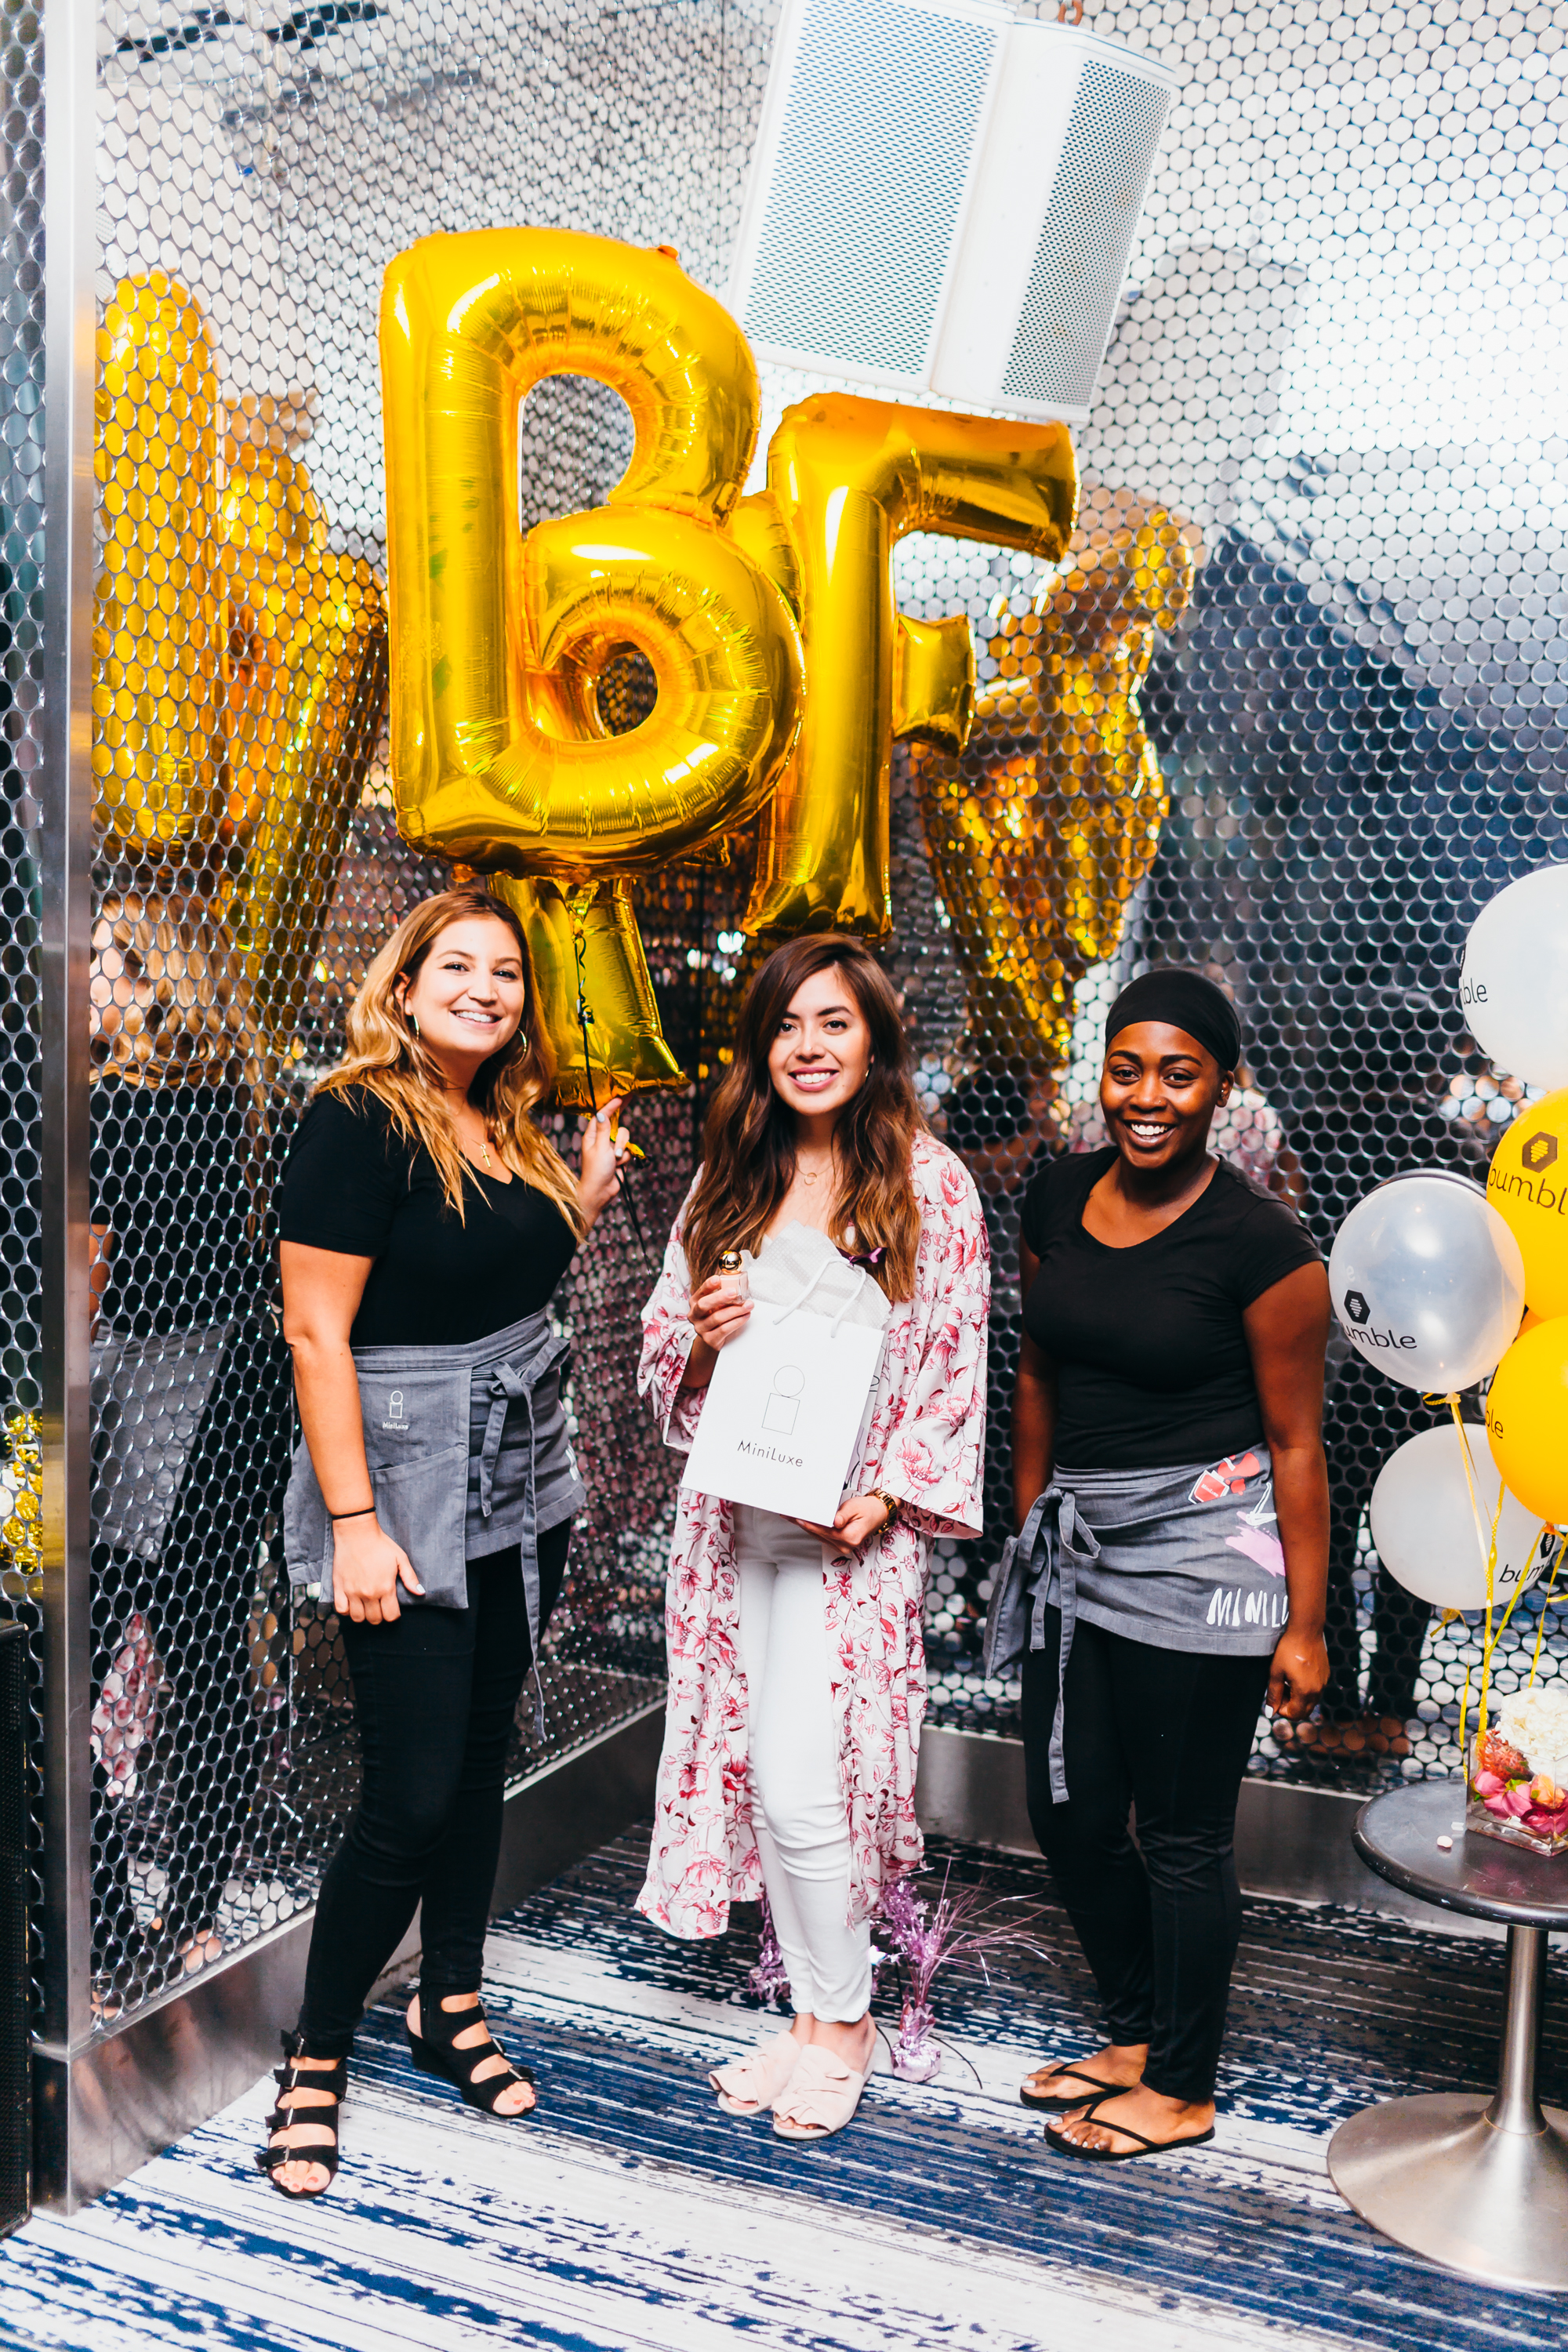 bumble-bff-dallas-launch-event-6695.jpg